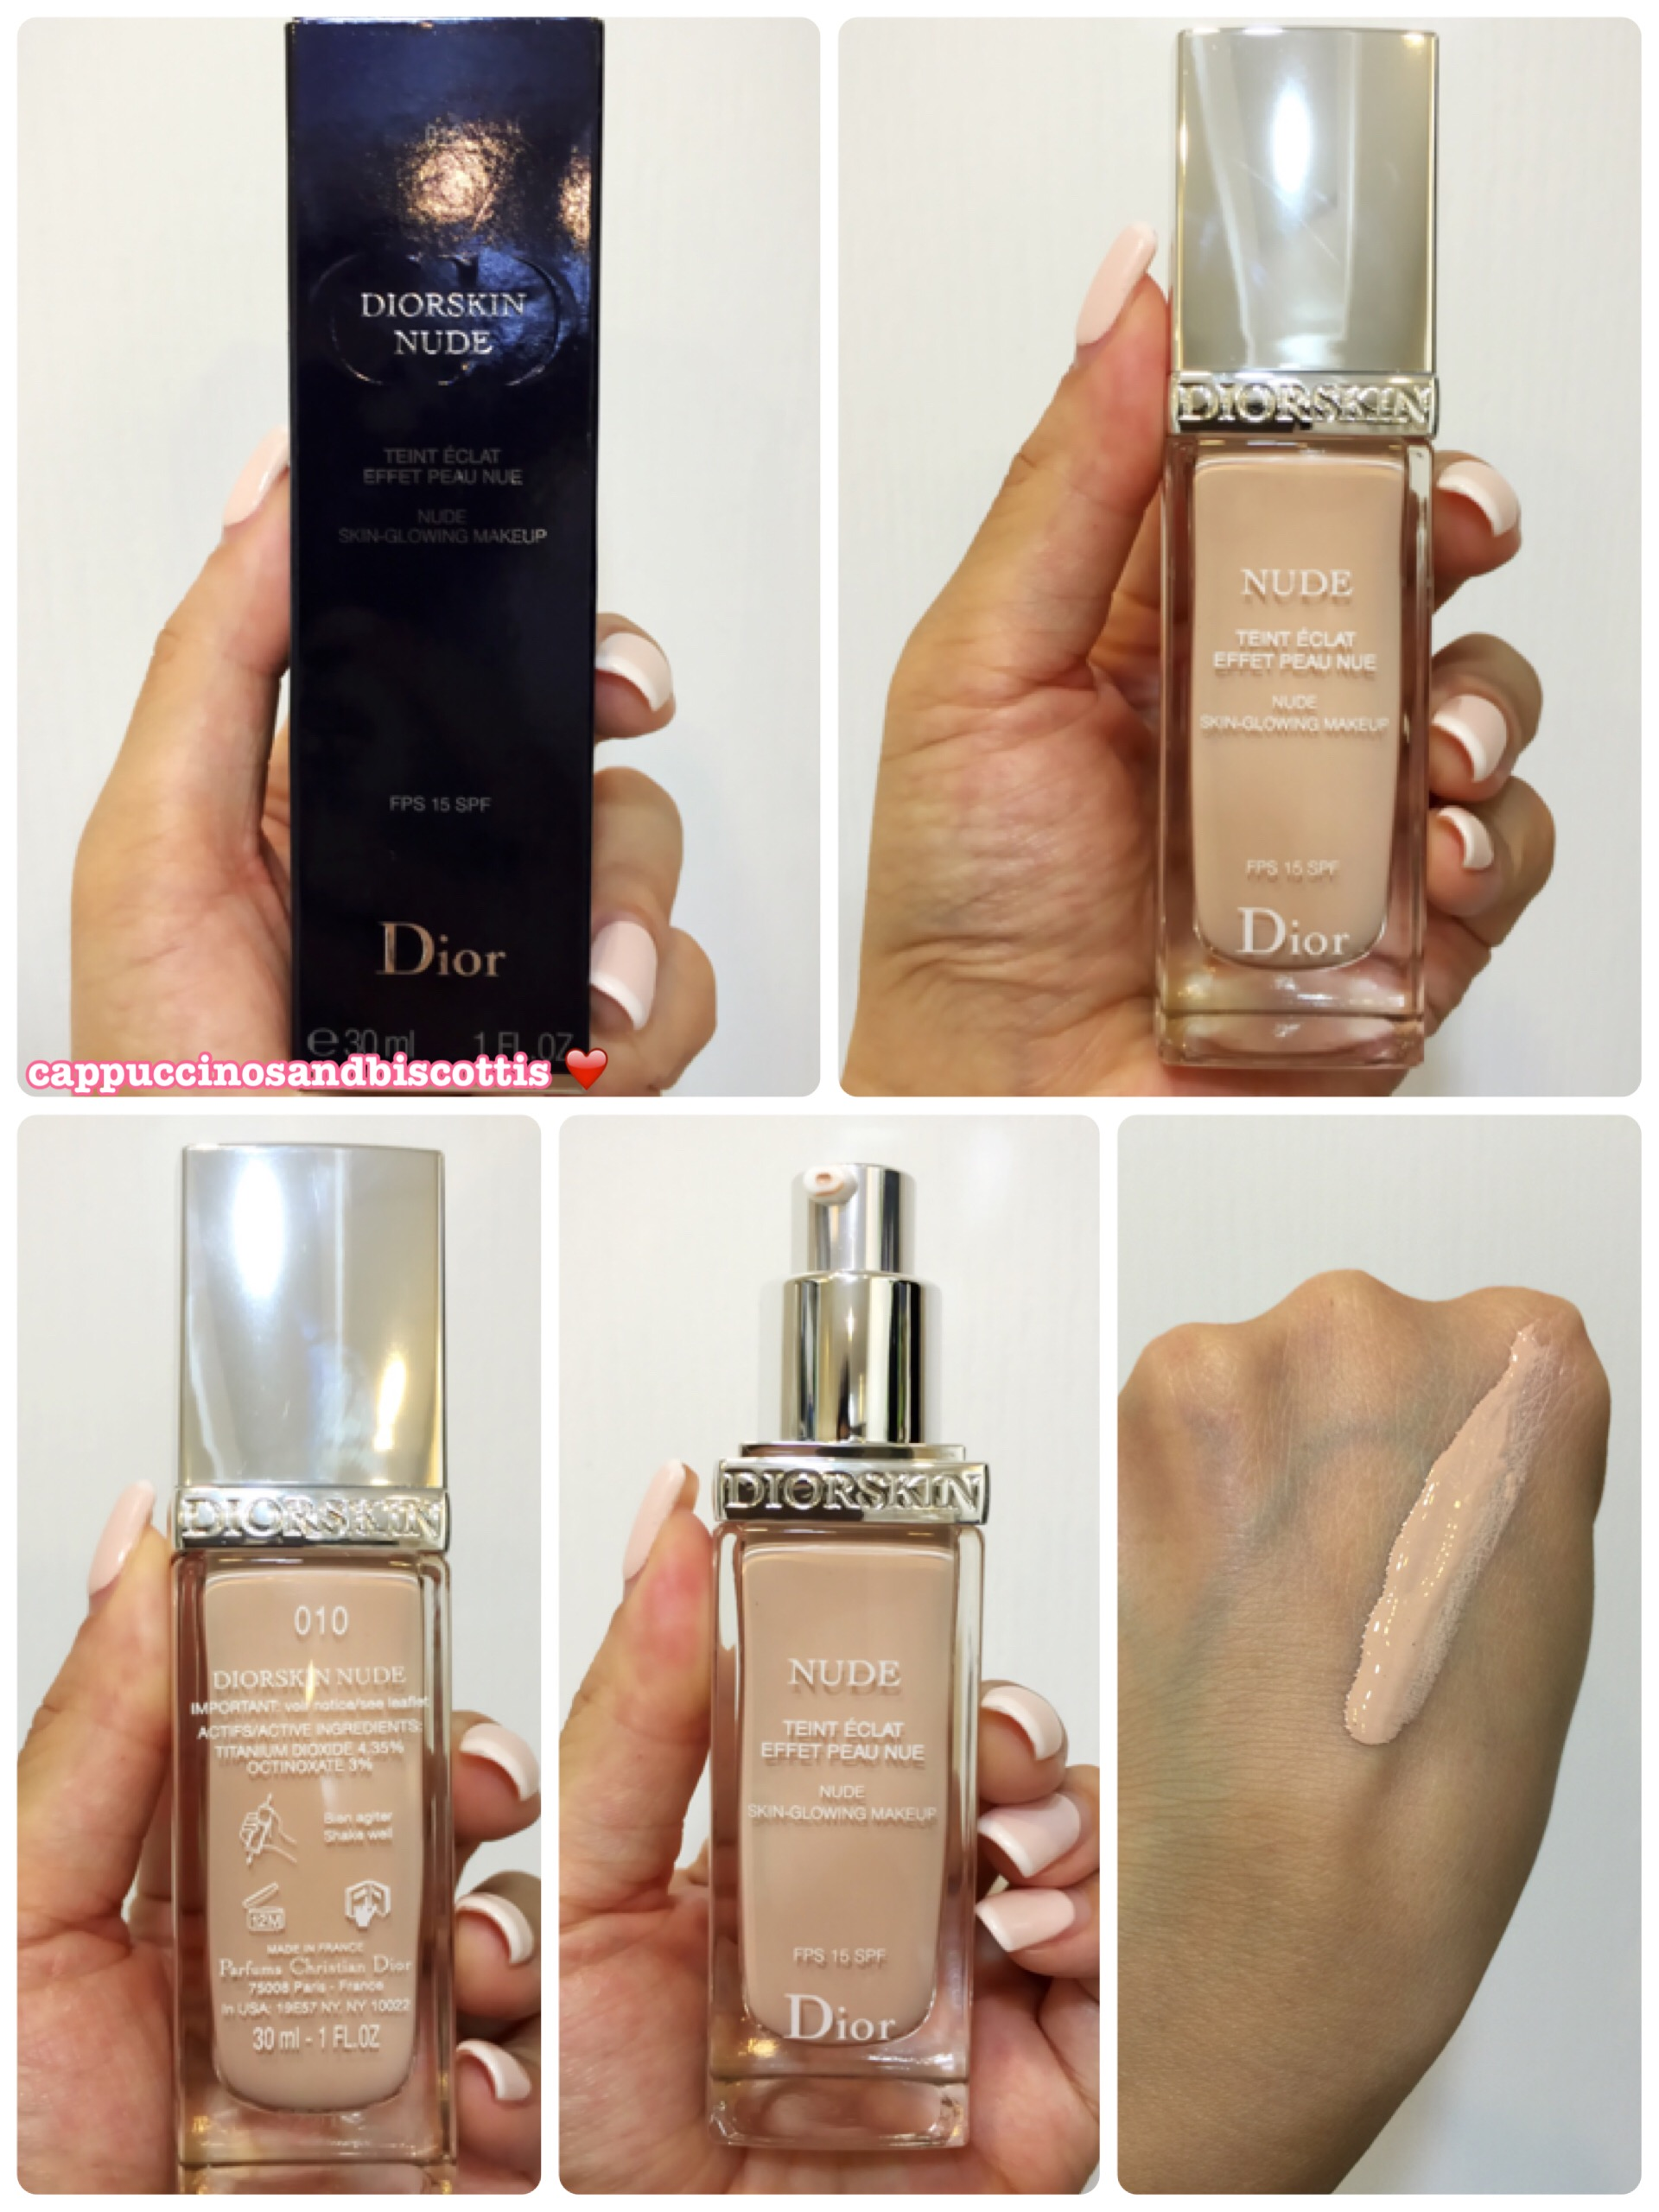 diorskin nude skin glowing makeup review cappuccinos and biscottis. Black Bedroom Furniture Sets. Home Design Ideas